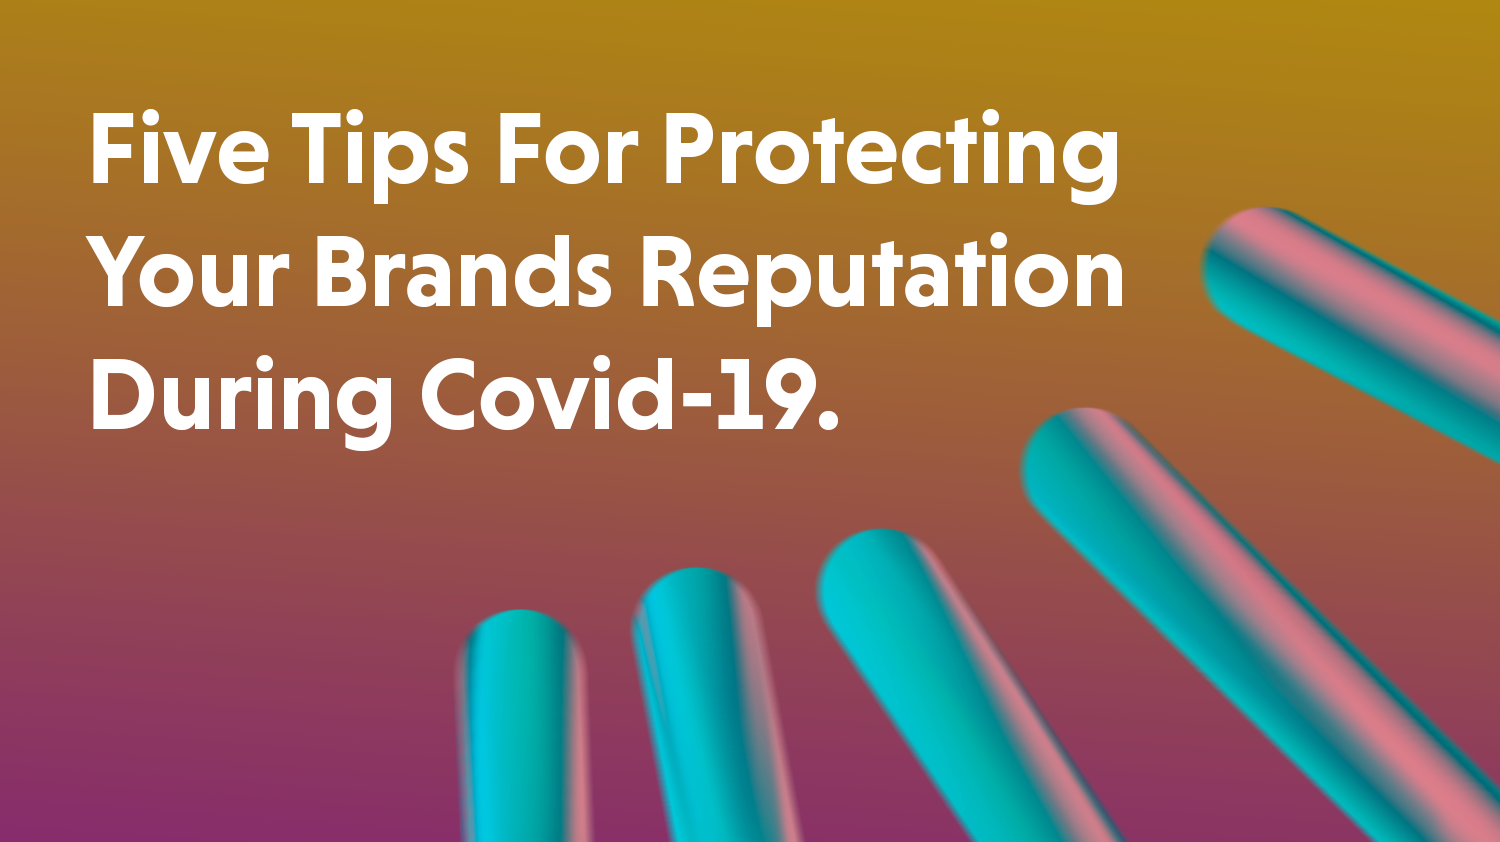 5 Tips For Protecting Your Brands Reputation During Covid-19